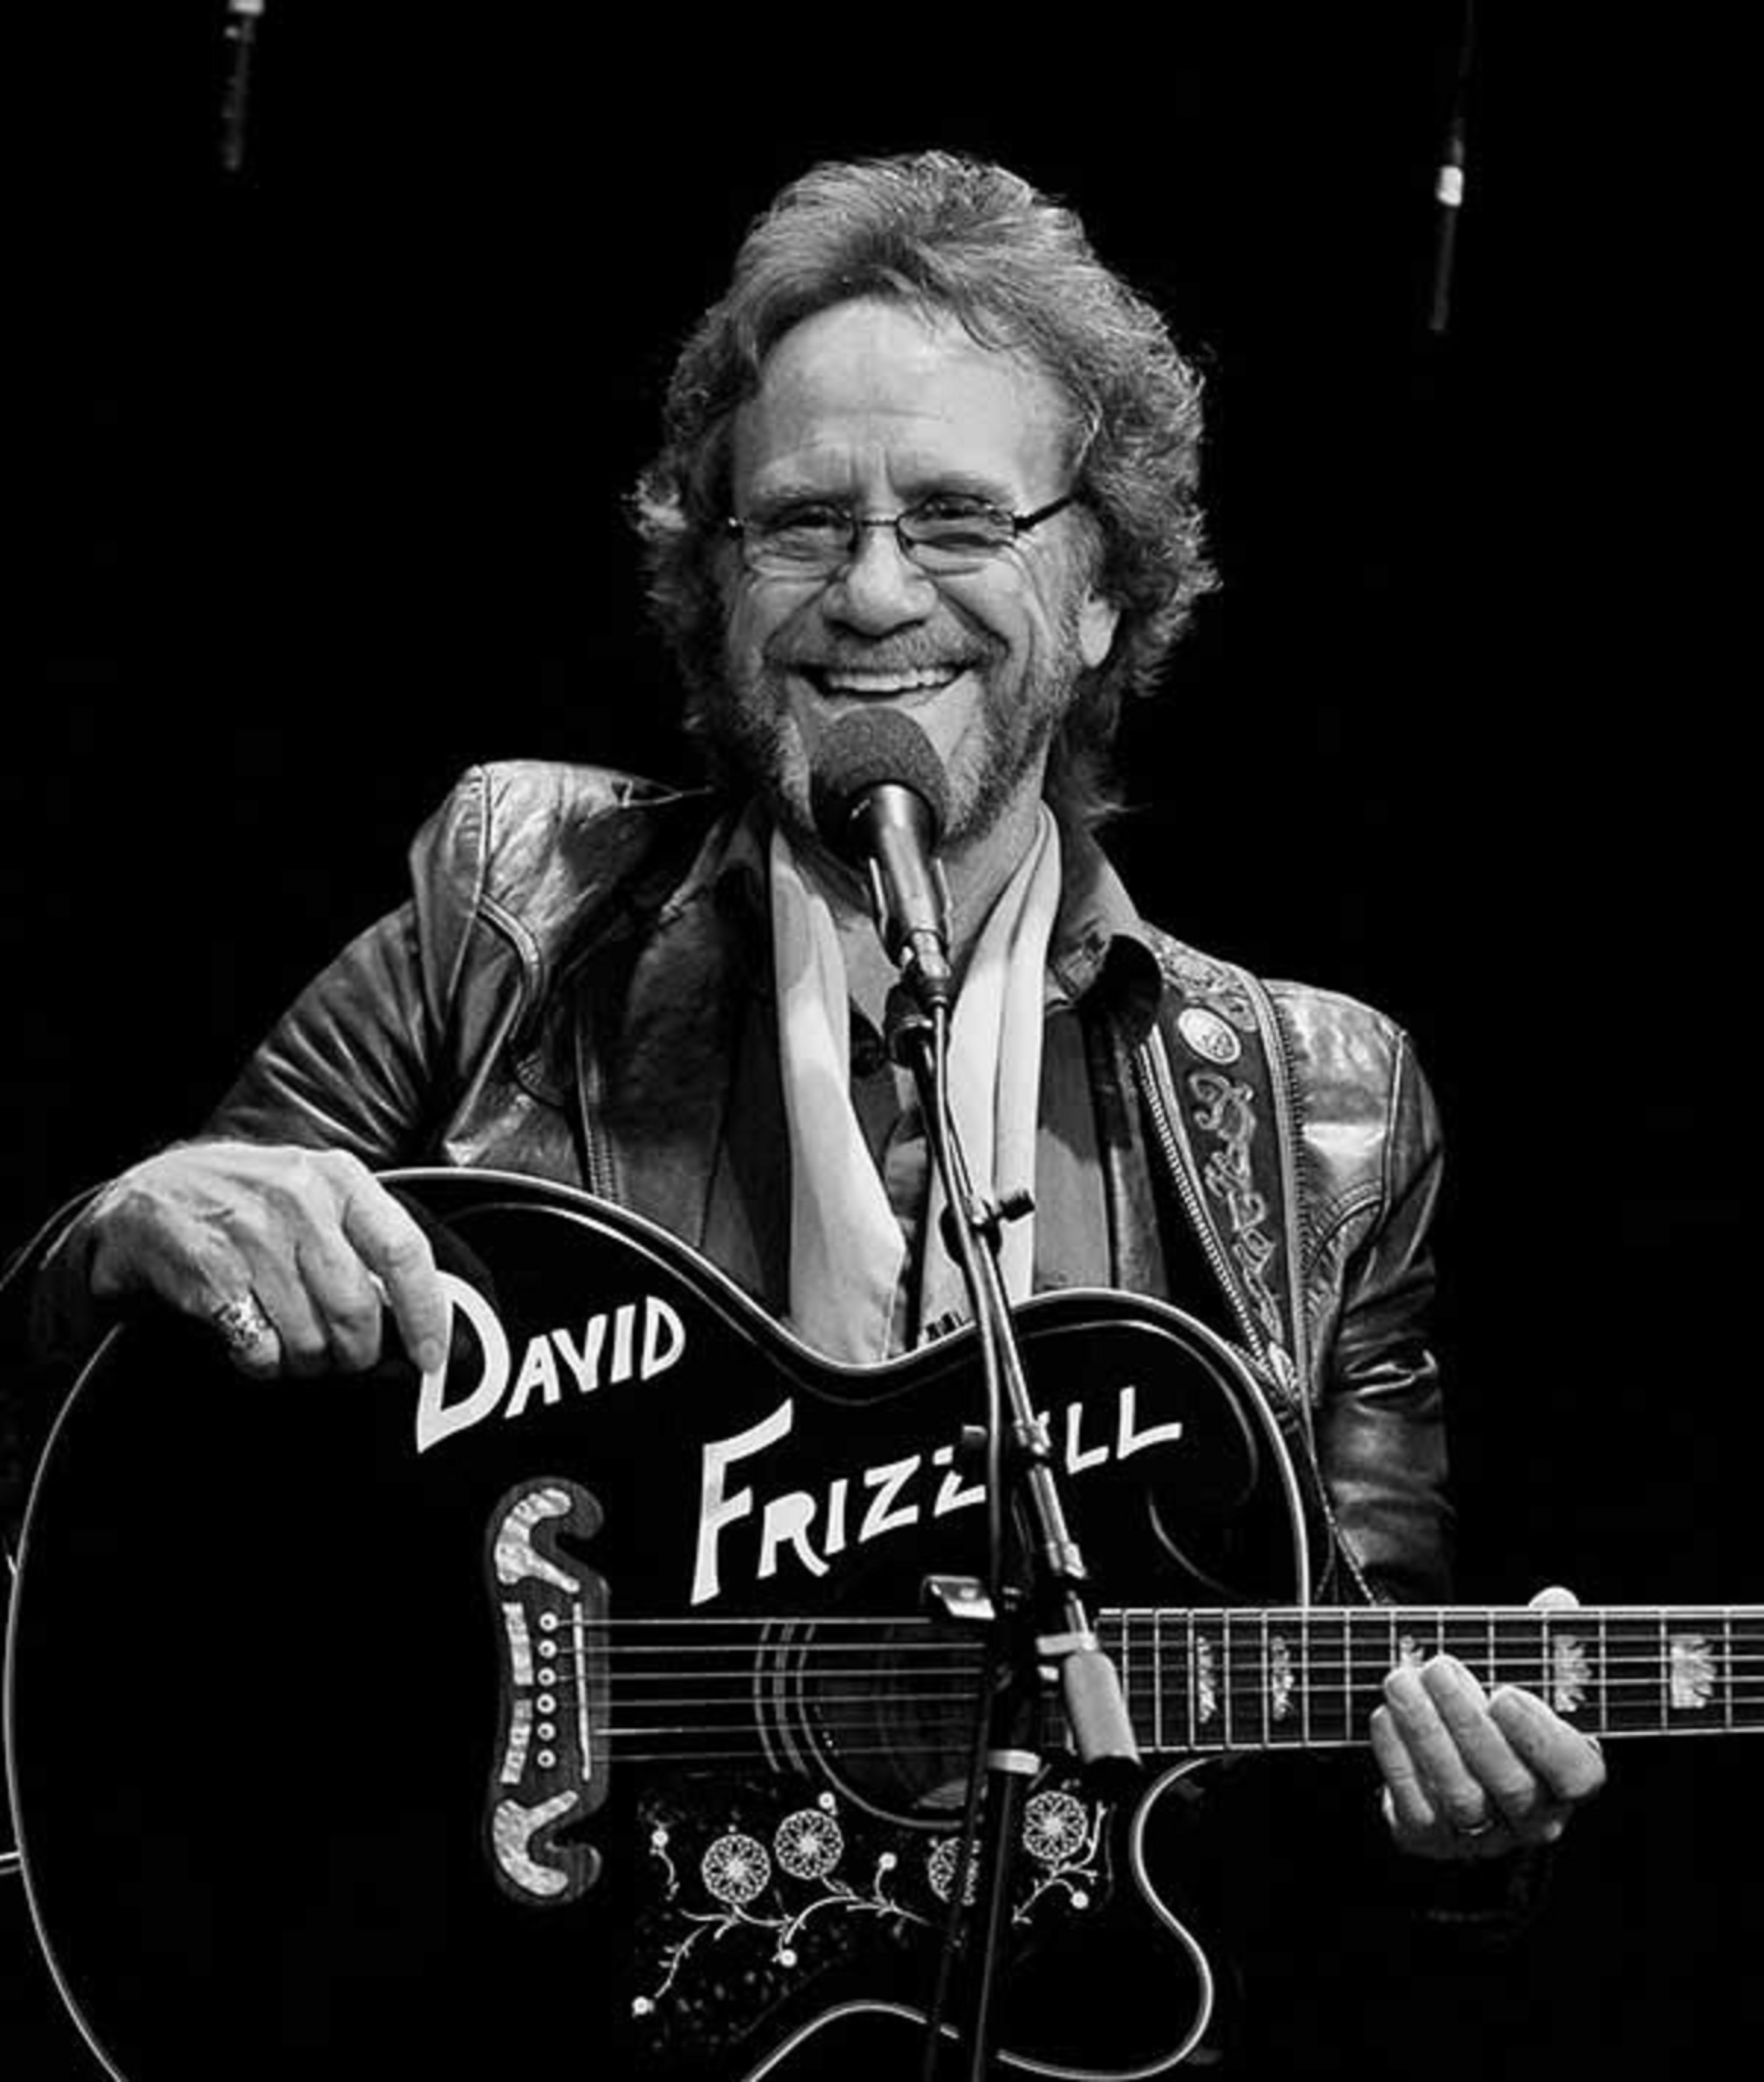 David Frizzell To Perform Live Stream Concert